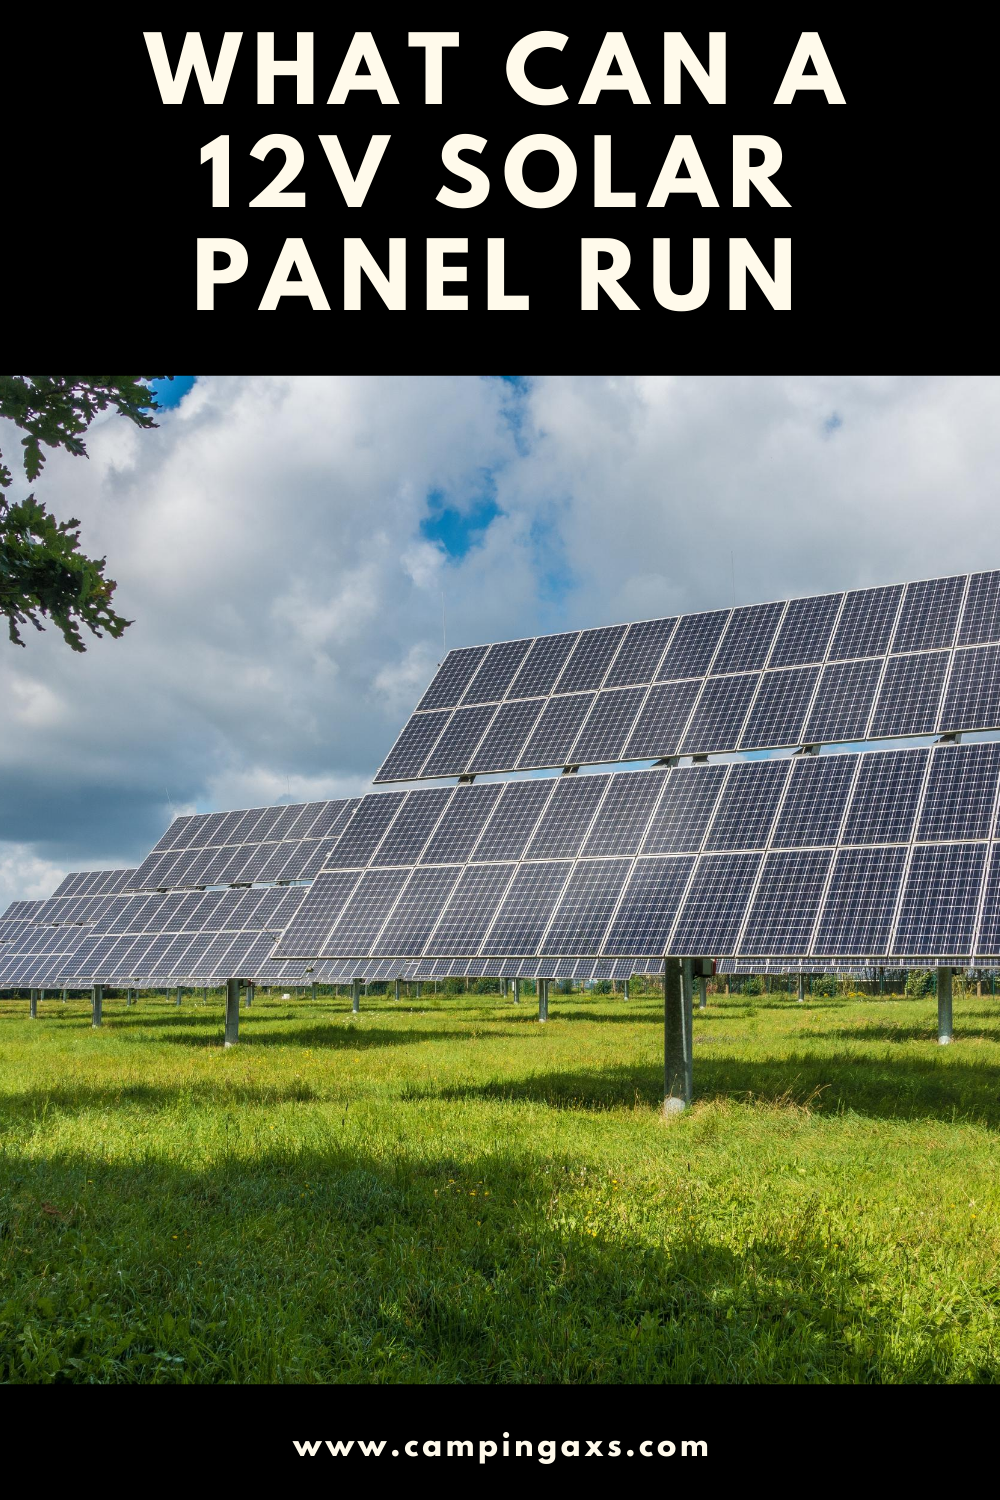 What Will A 12v Solar Panel Run Campingaxs Com In 2020 12v Solar Panel Solar Panels Solar